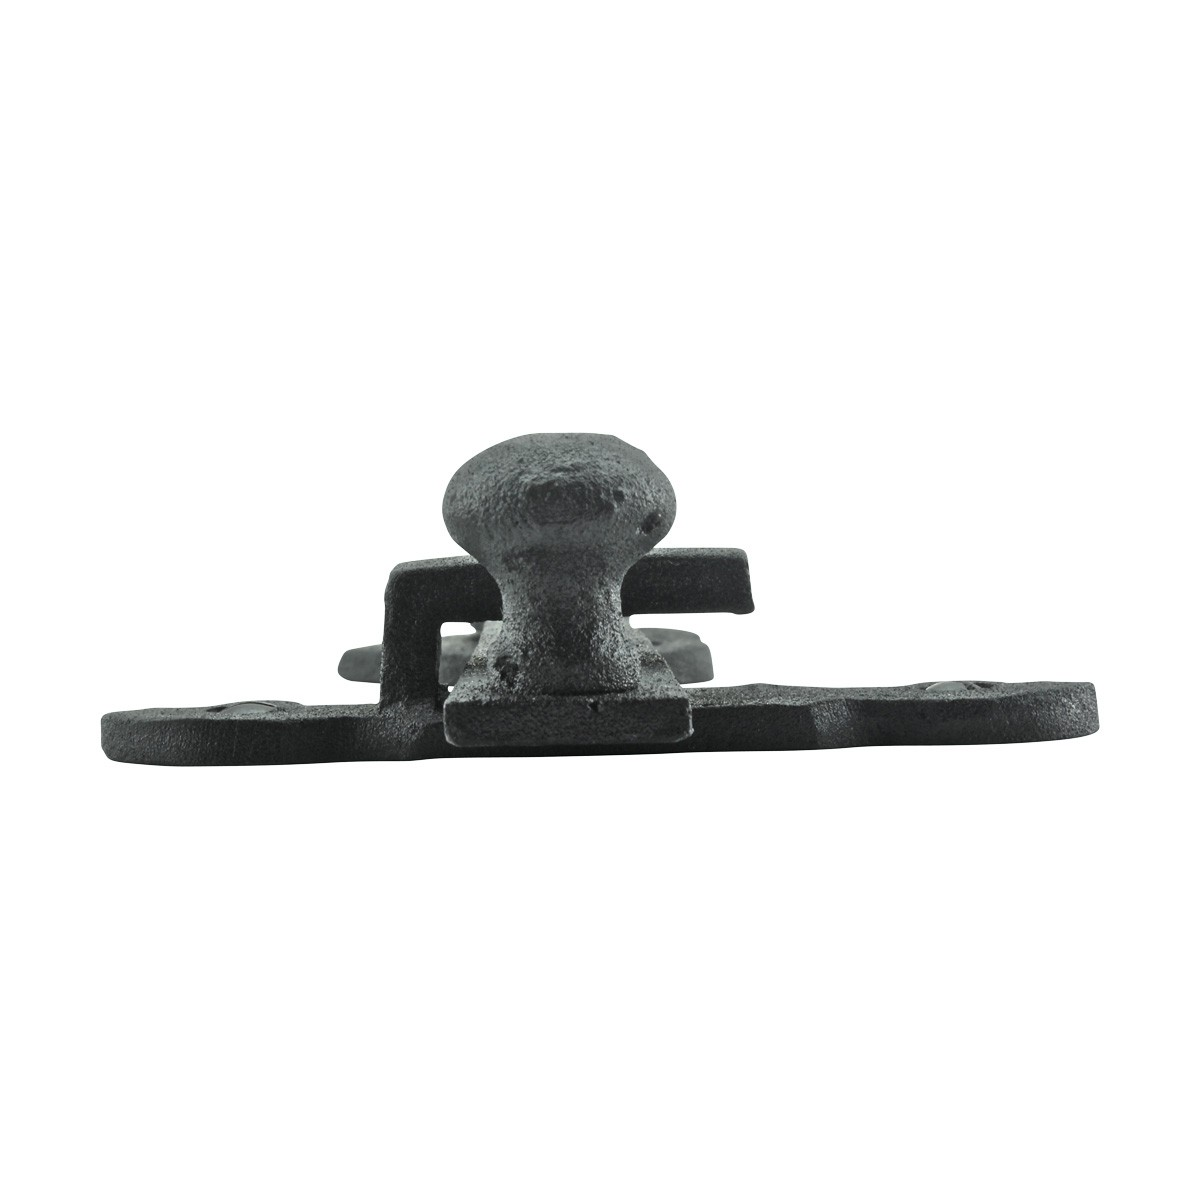 3 Gate Latch Heavy Black Wrought Iron Set 4 X 638 Gate Latches Gate Latch Wrought Iron Gate Latches